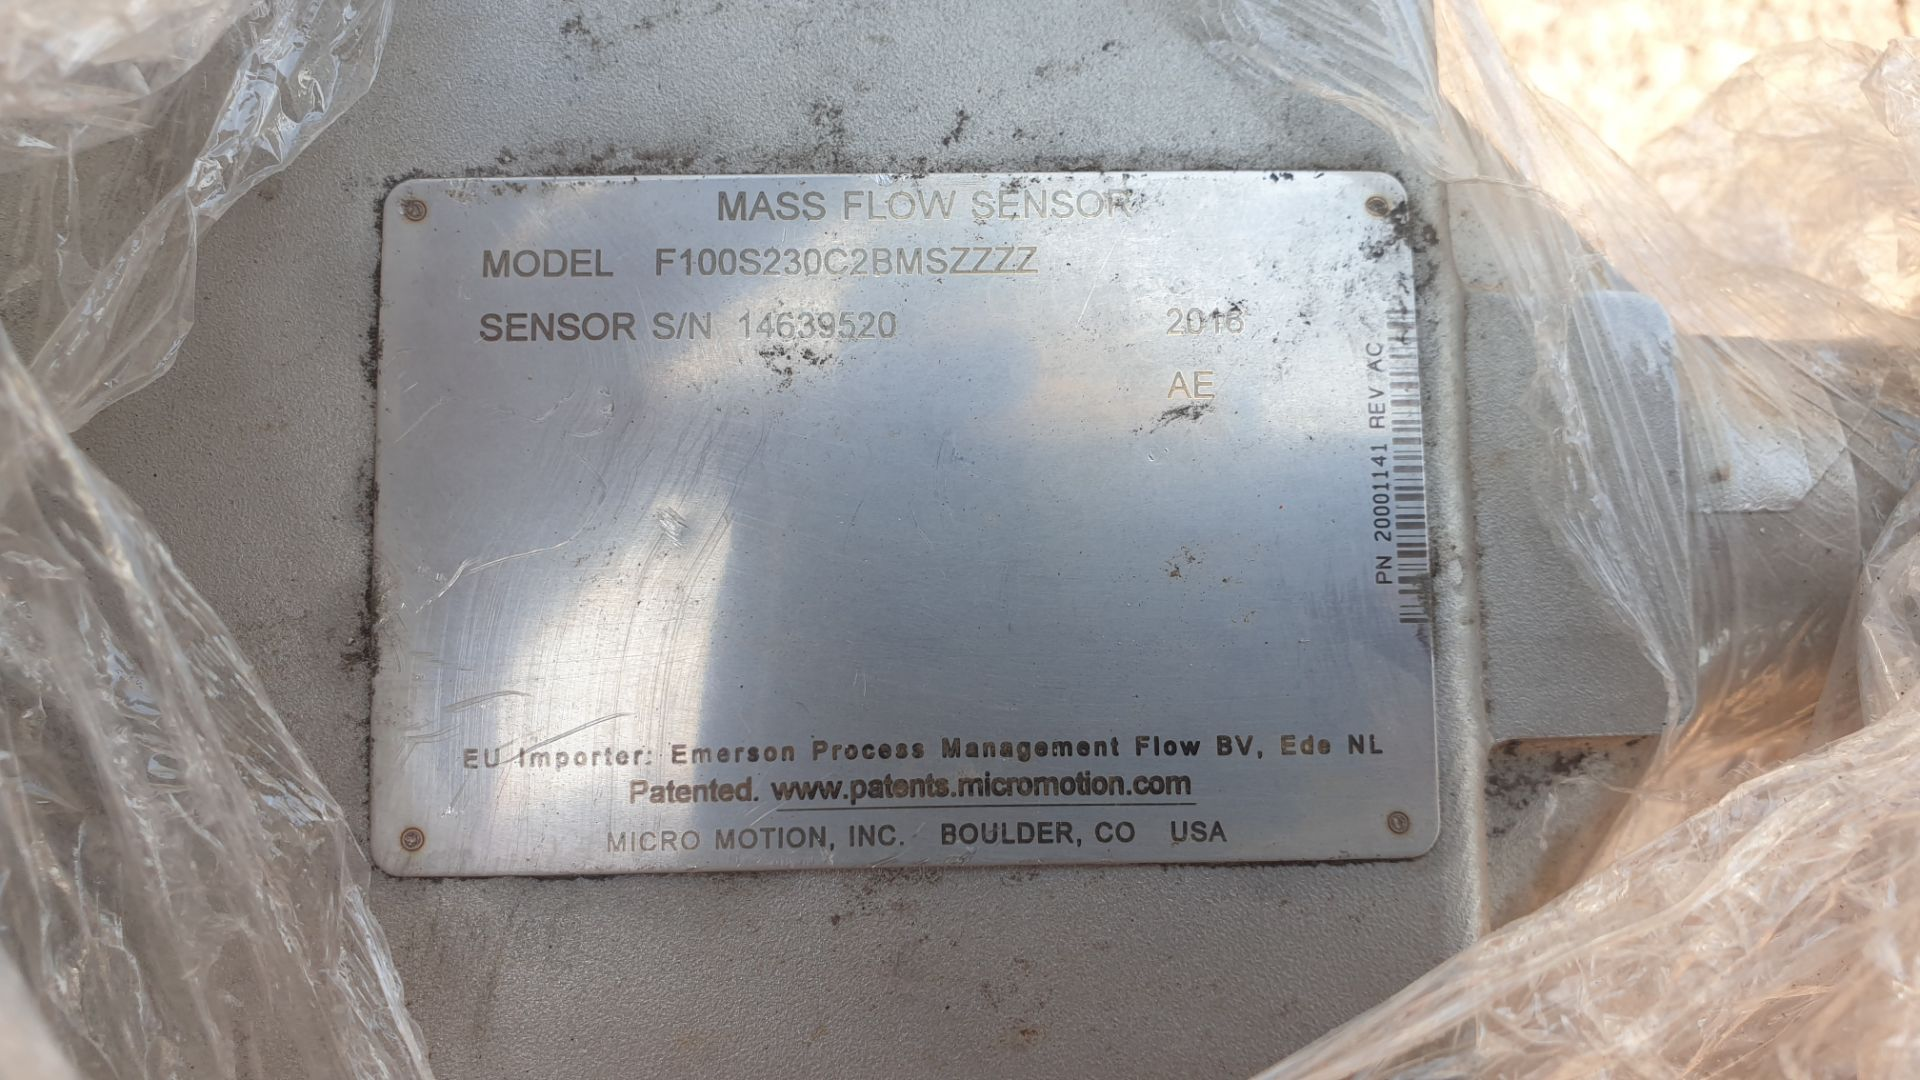 Micromotion Flow meter, model F100S230C2BMSZZZZ NS 14639520 2016 - Image 4 of 10